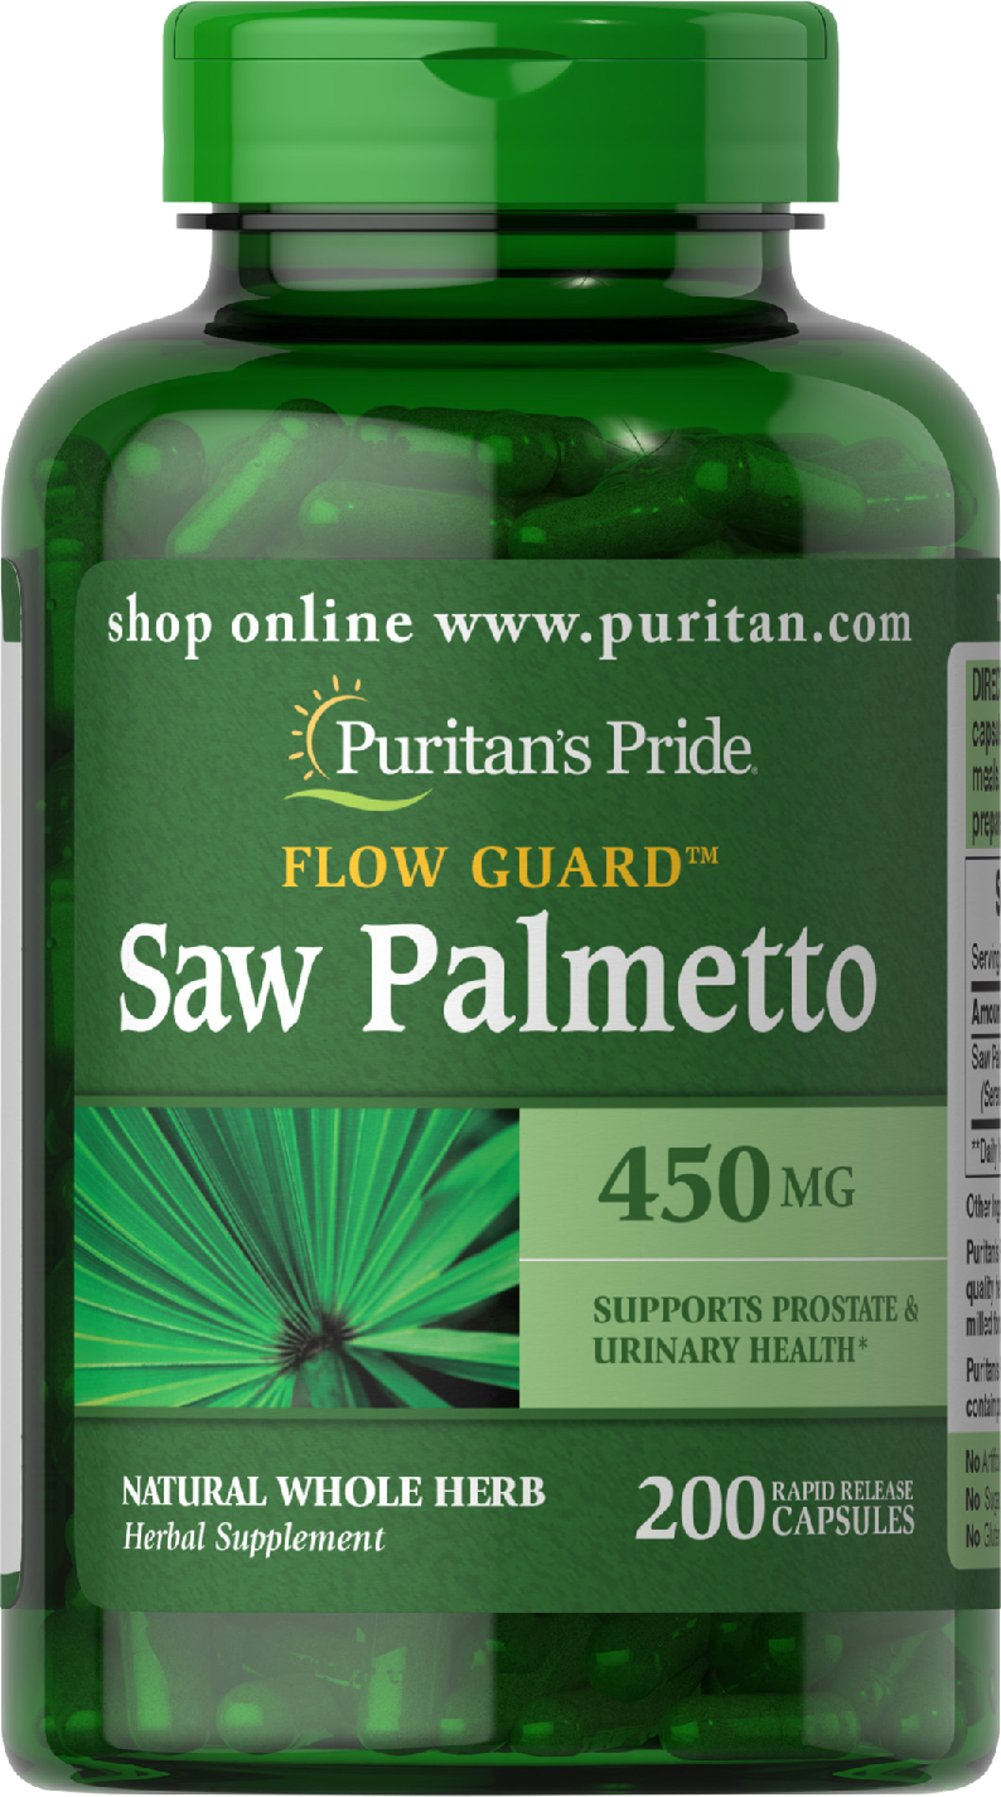 Saw Palmetto 450 mg  200 Capsules 450 mg $13.59